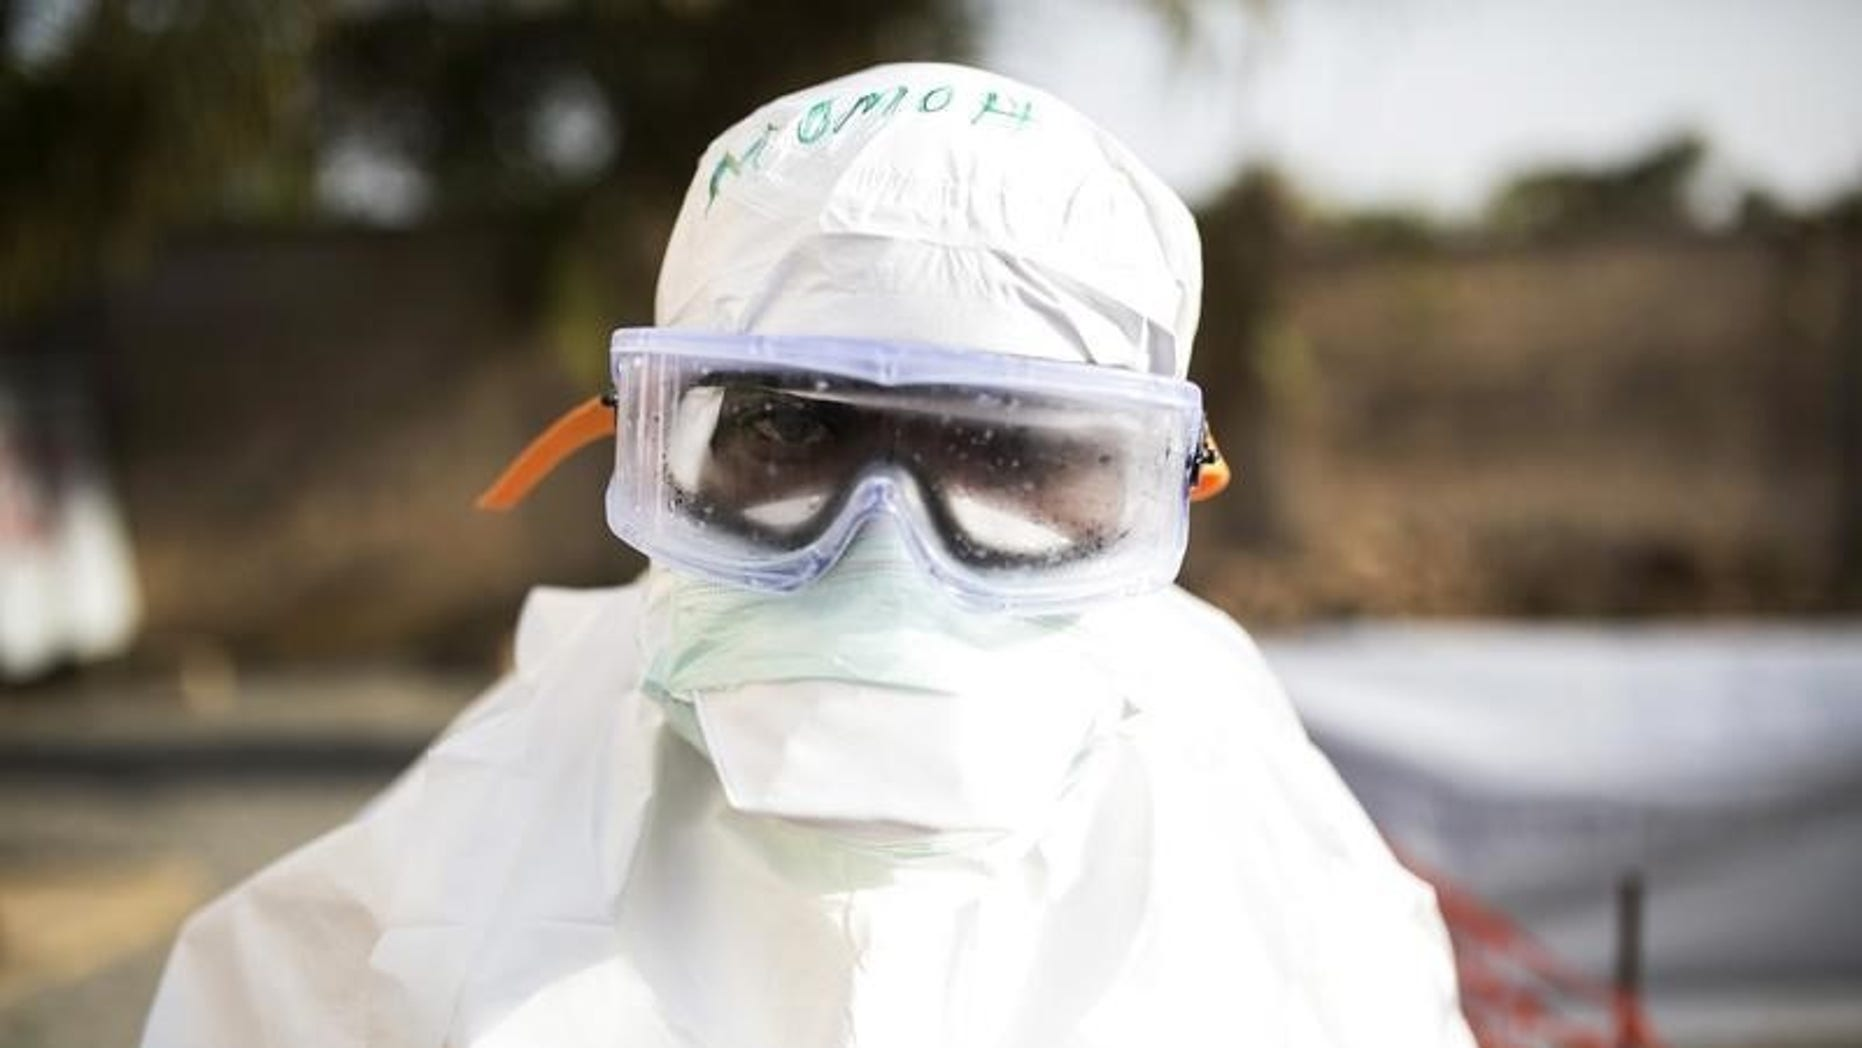 A health worker wearing protective gear stands outside a quarantine zone in a Red Cross facility in the town of Koidu, Kono district in Eastern Sierra Leone December 18, 2014. REUTERS/Baz Ratner